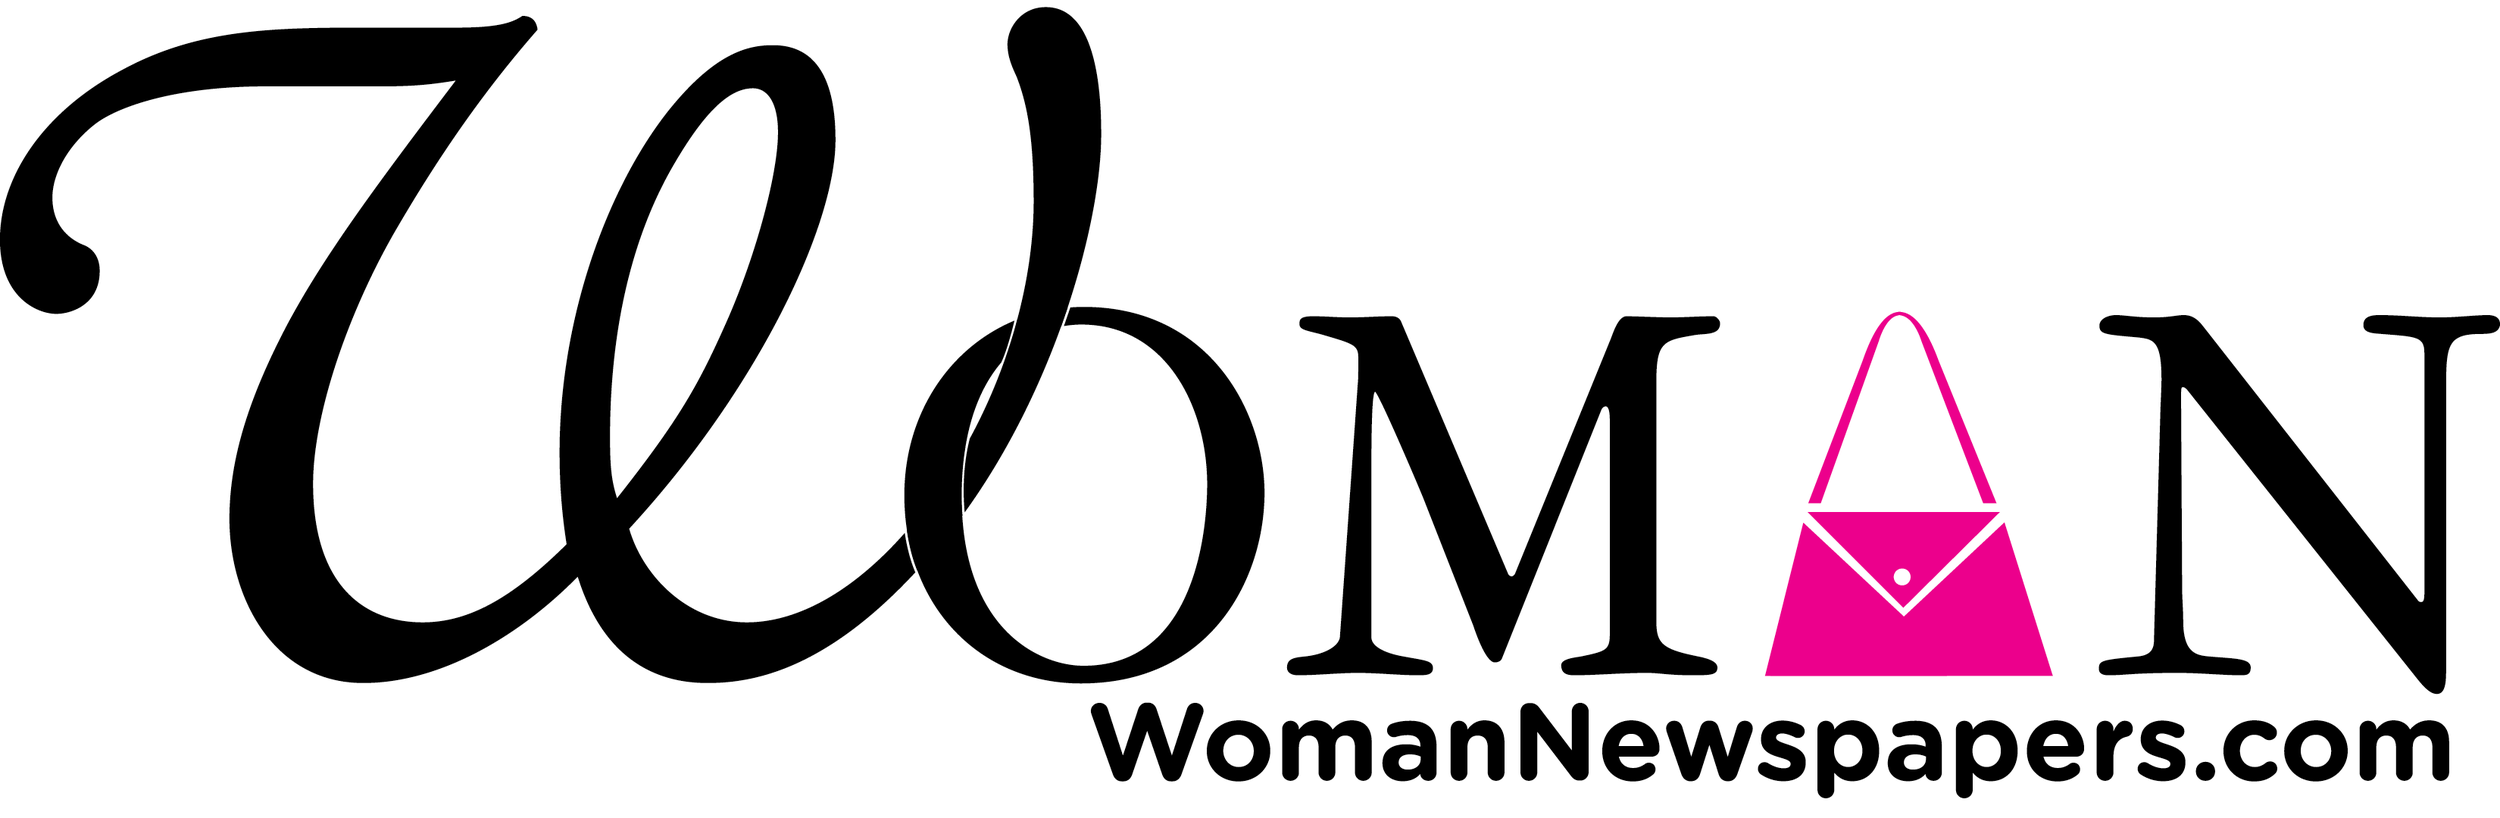 Copy of Woman_Newspapers_Logo-Lockup-2018 (1).png